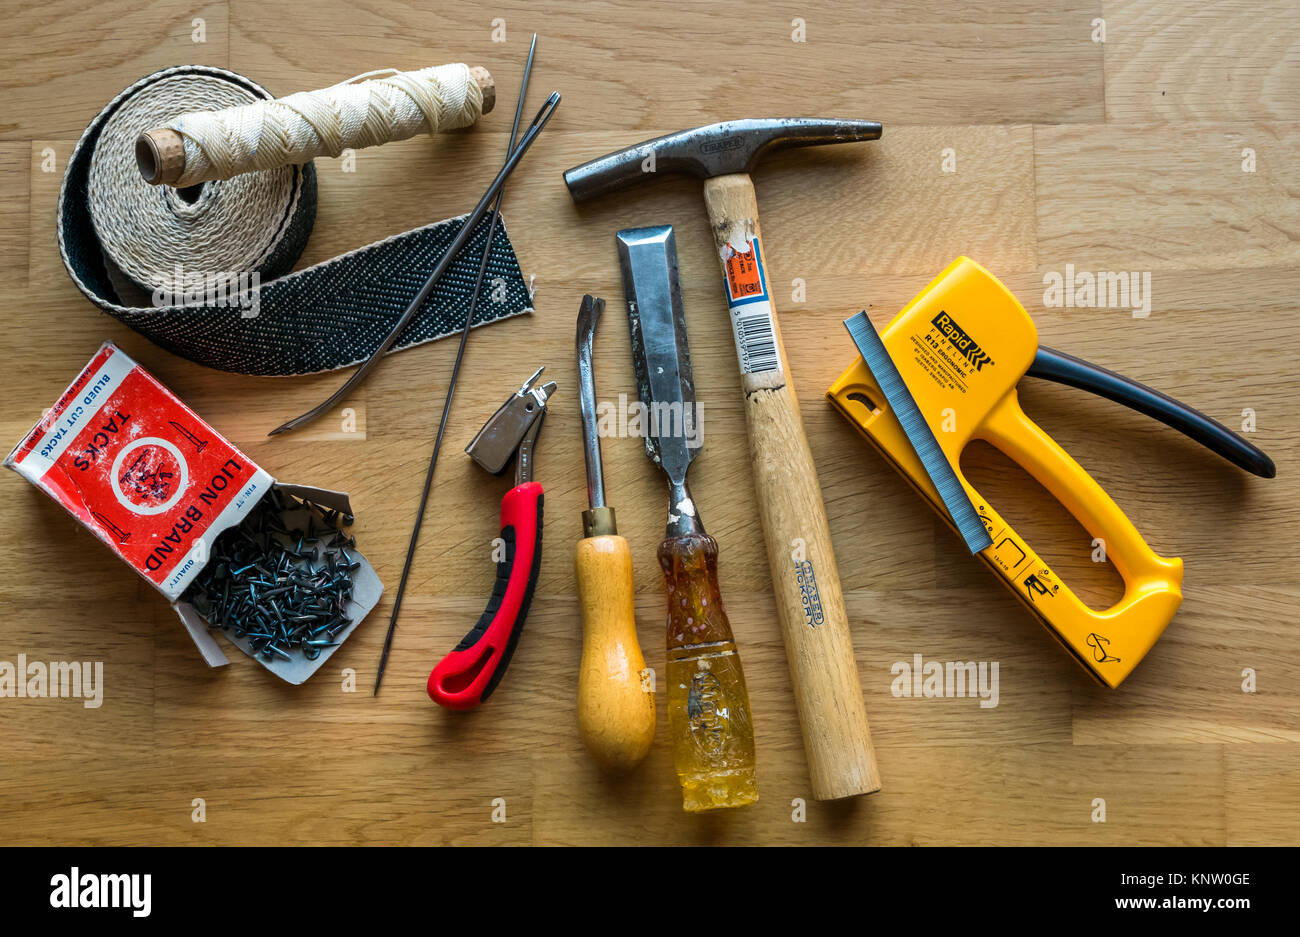 Variety of tools and materials for upholstery work, including hammer, chisel, tack lifter, staple lifter, webbing, - Stock Image